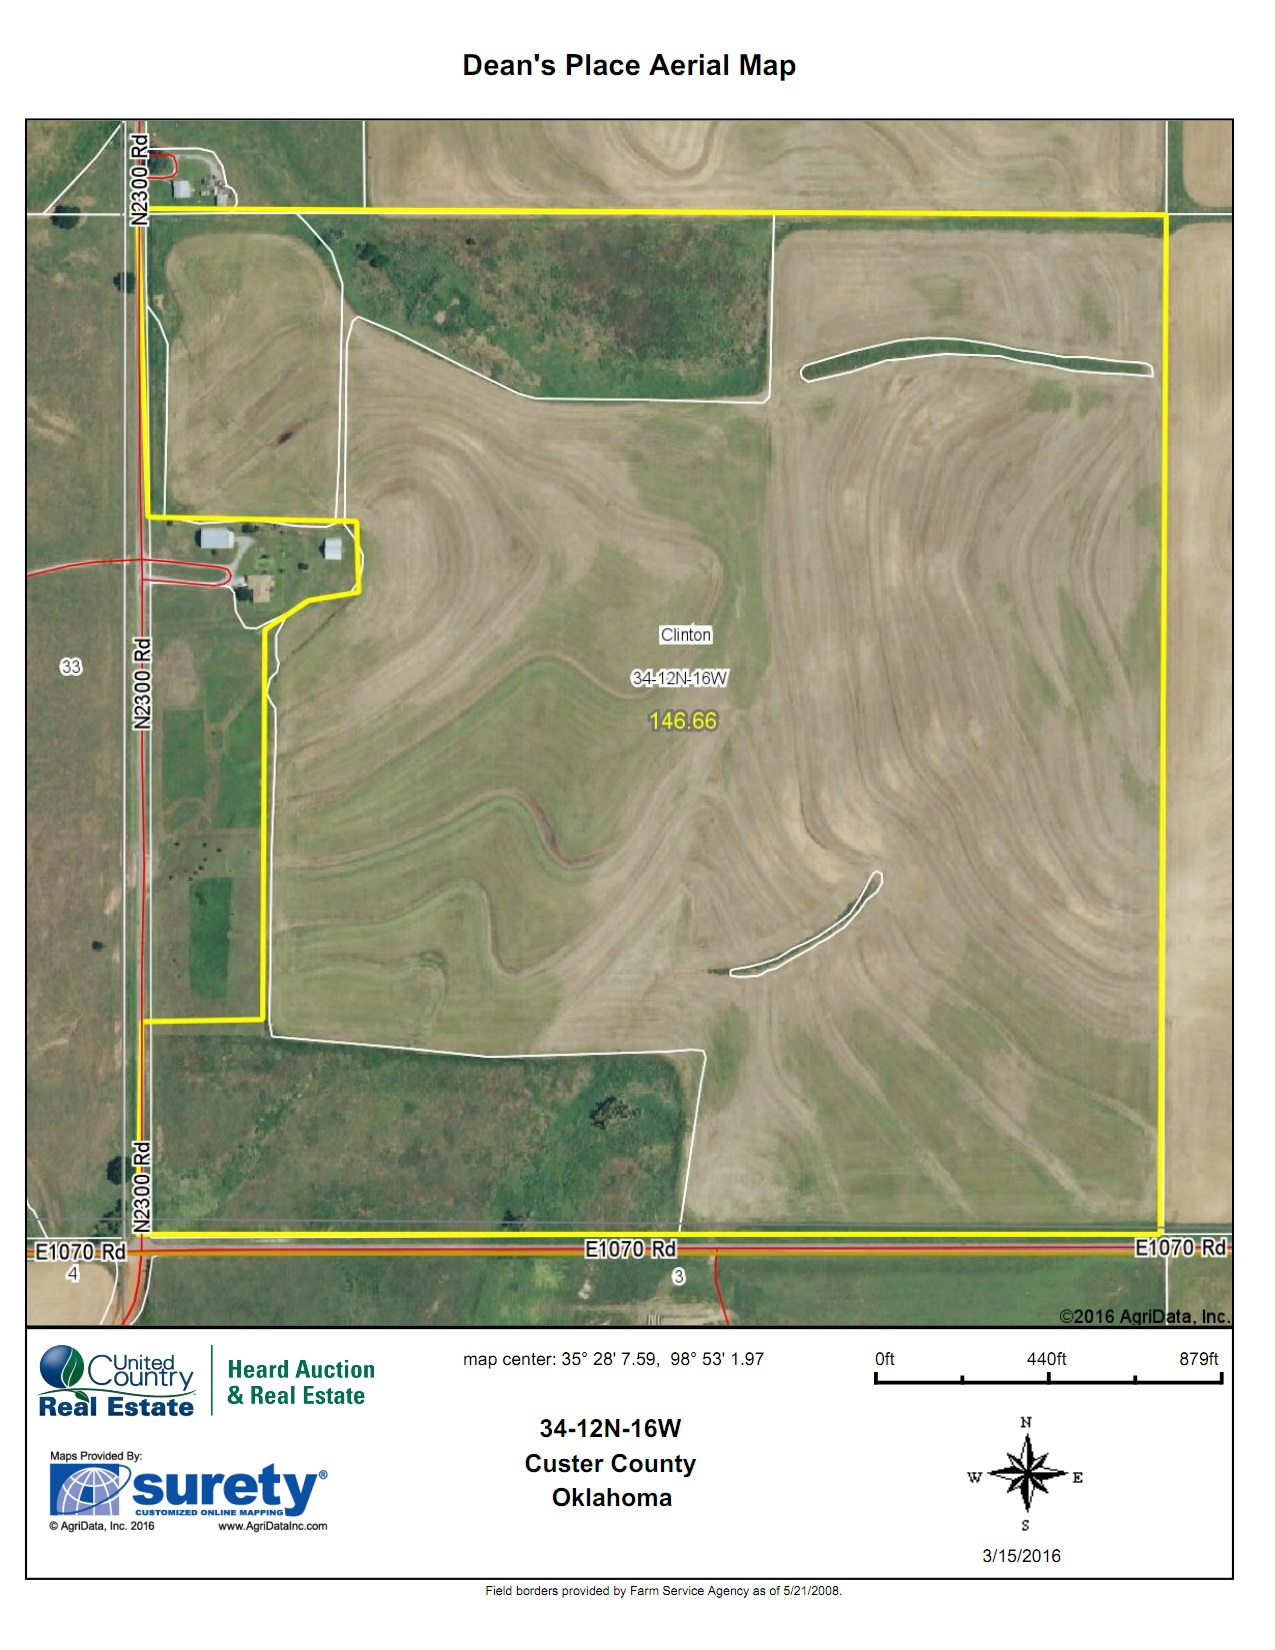 Oklahoma Farm for Sale, Custer County, Tract 6